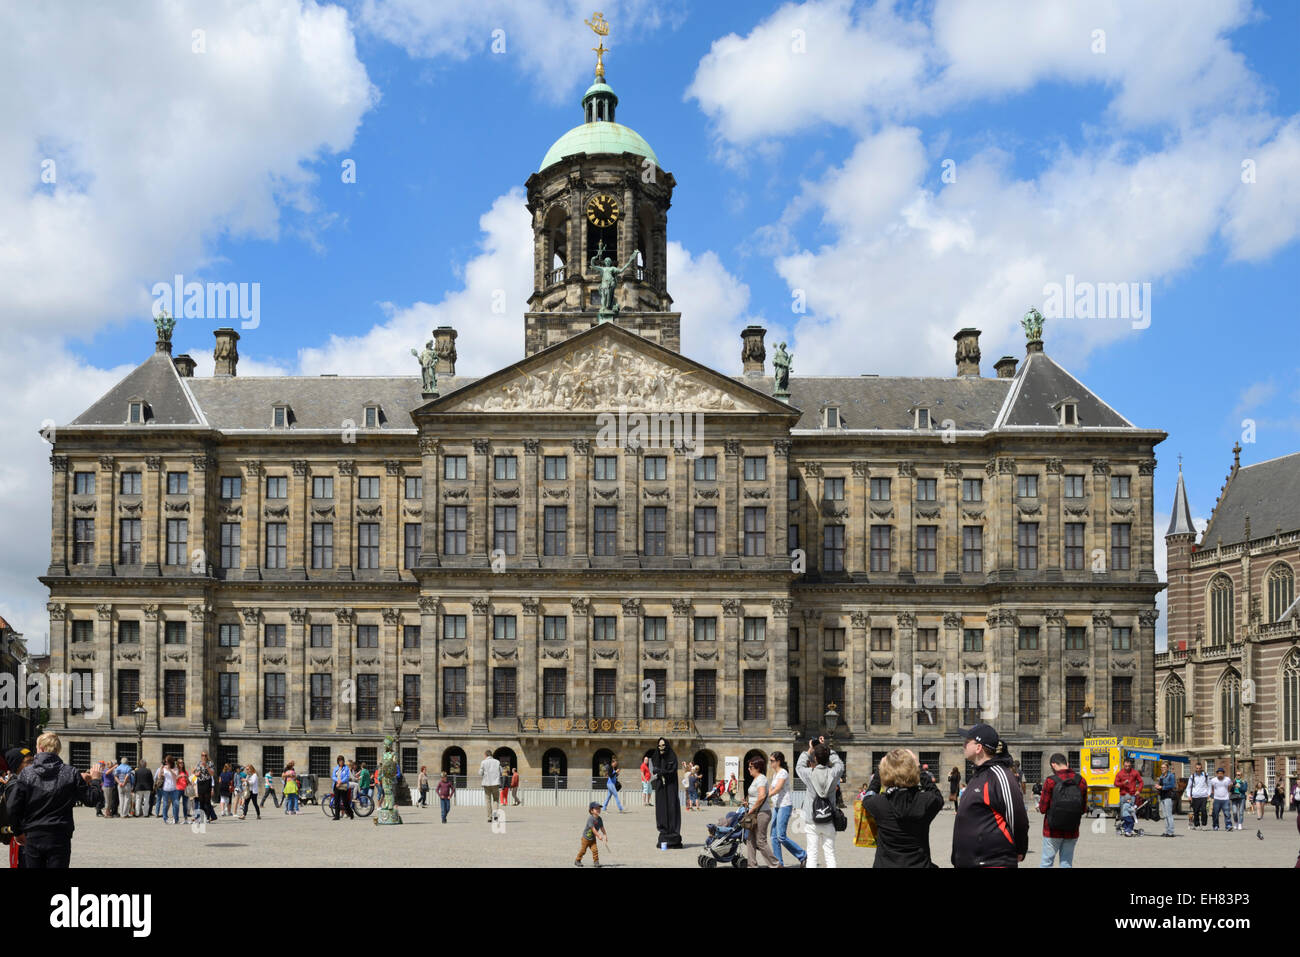 Royal Palace, Dam Square, Amsterdam, North Holland, Netherlands, Europe Stock Photo